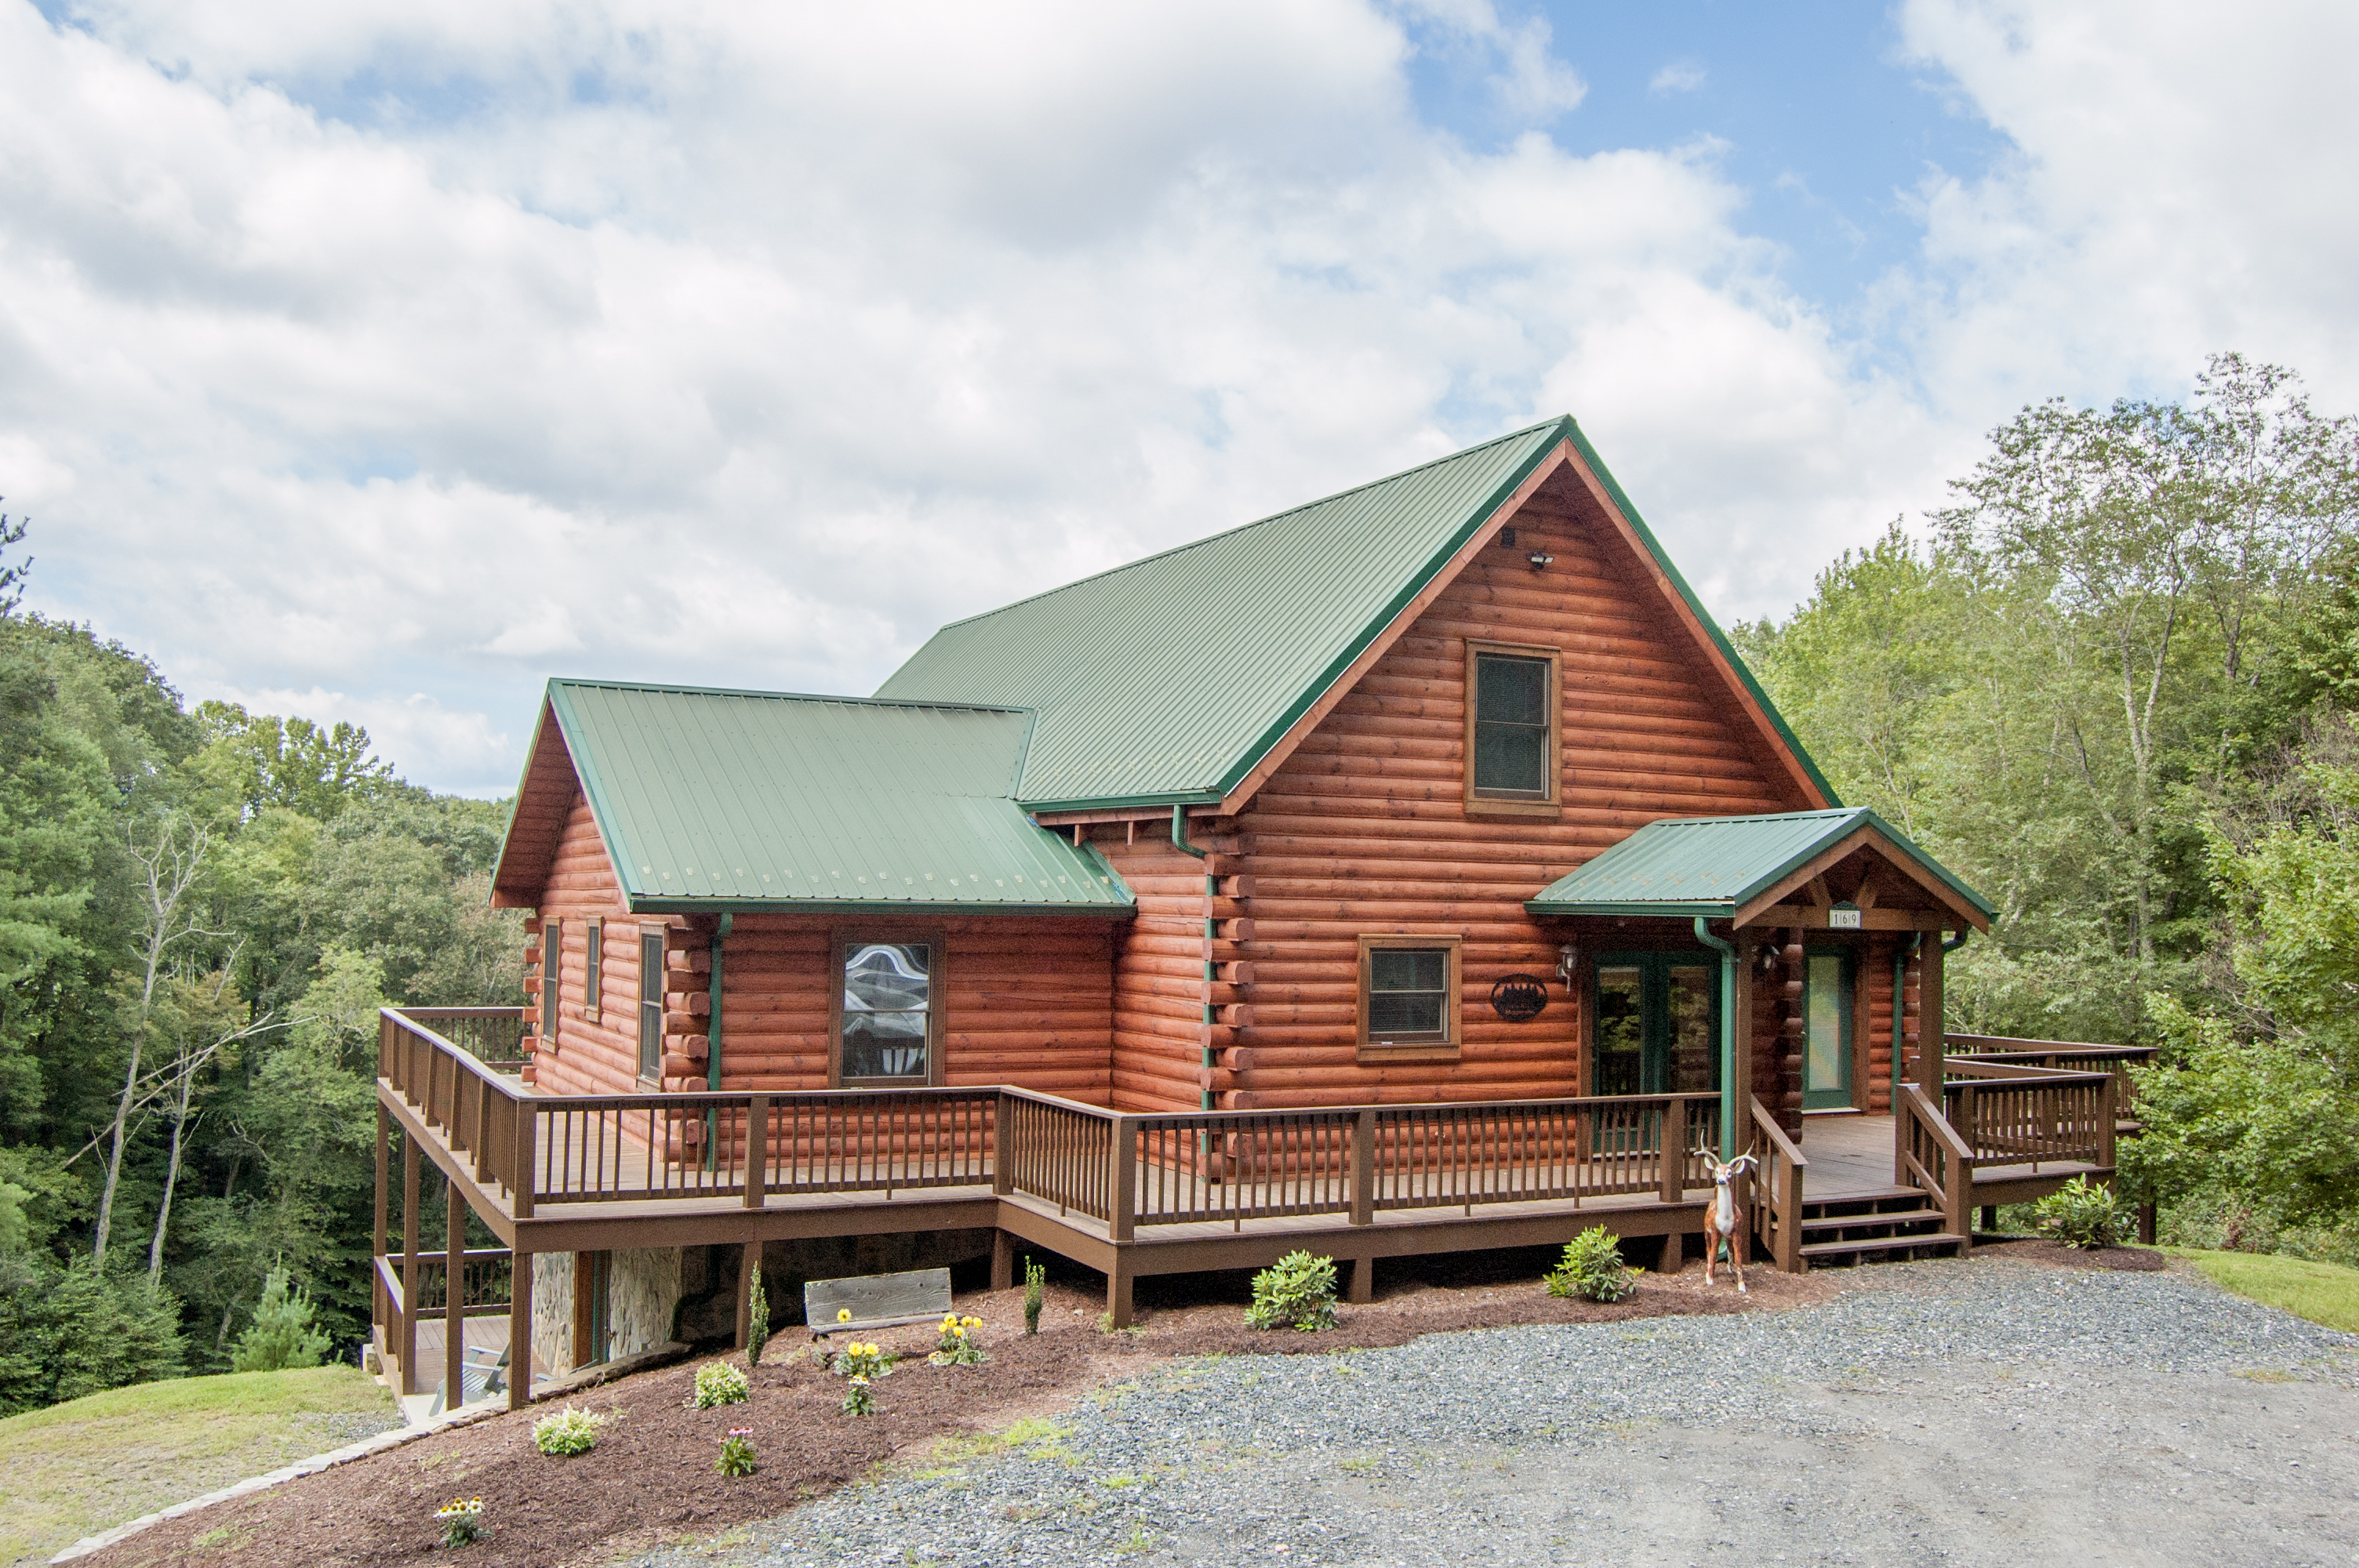 term yonalossee boone north bath rentals home long bedroom carolina browse cabin vacation ridge blue in cabins